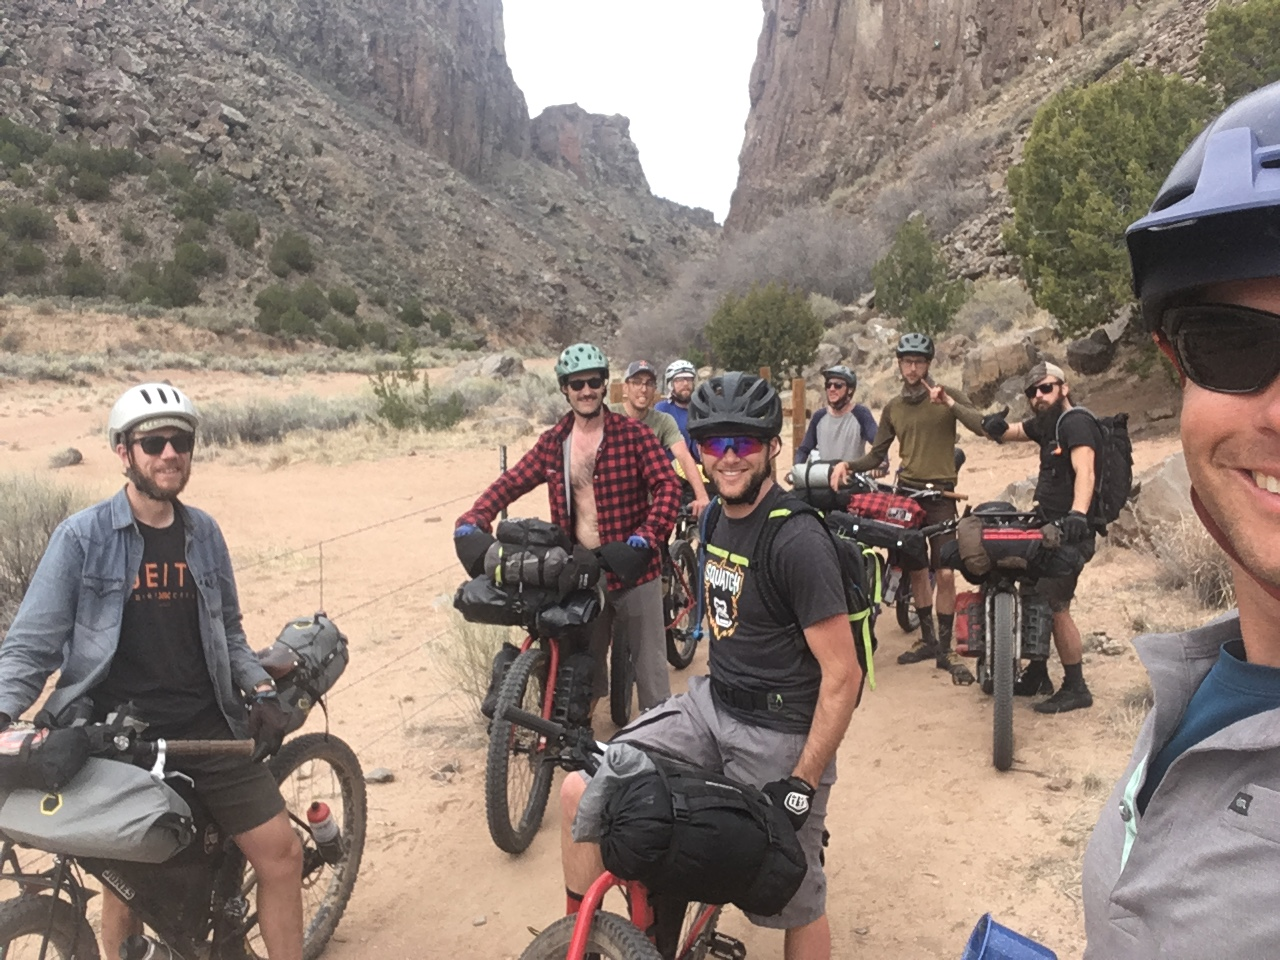 Front view of smiling group of cyclist standing in the sand with their gear loaded bike a the bottom desert canyon